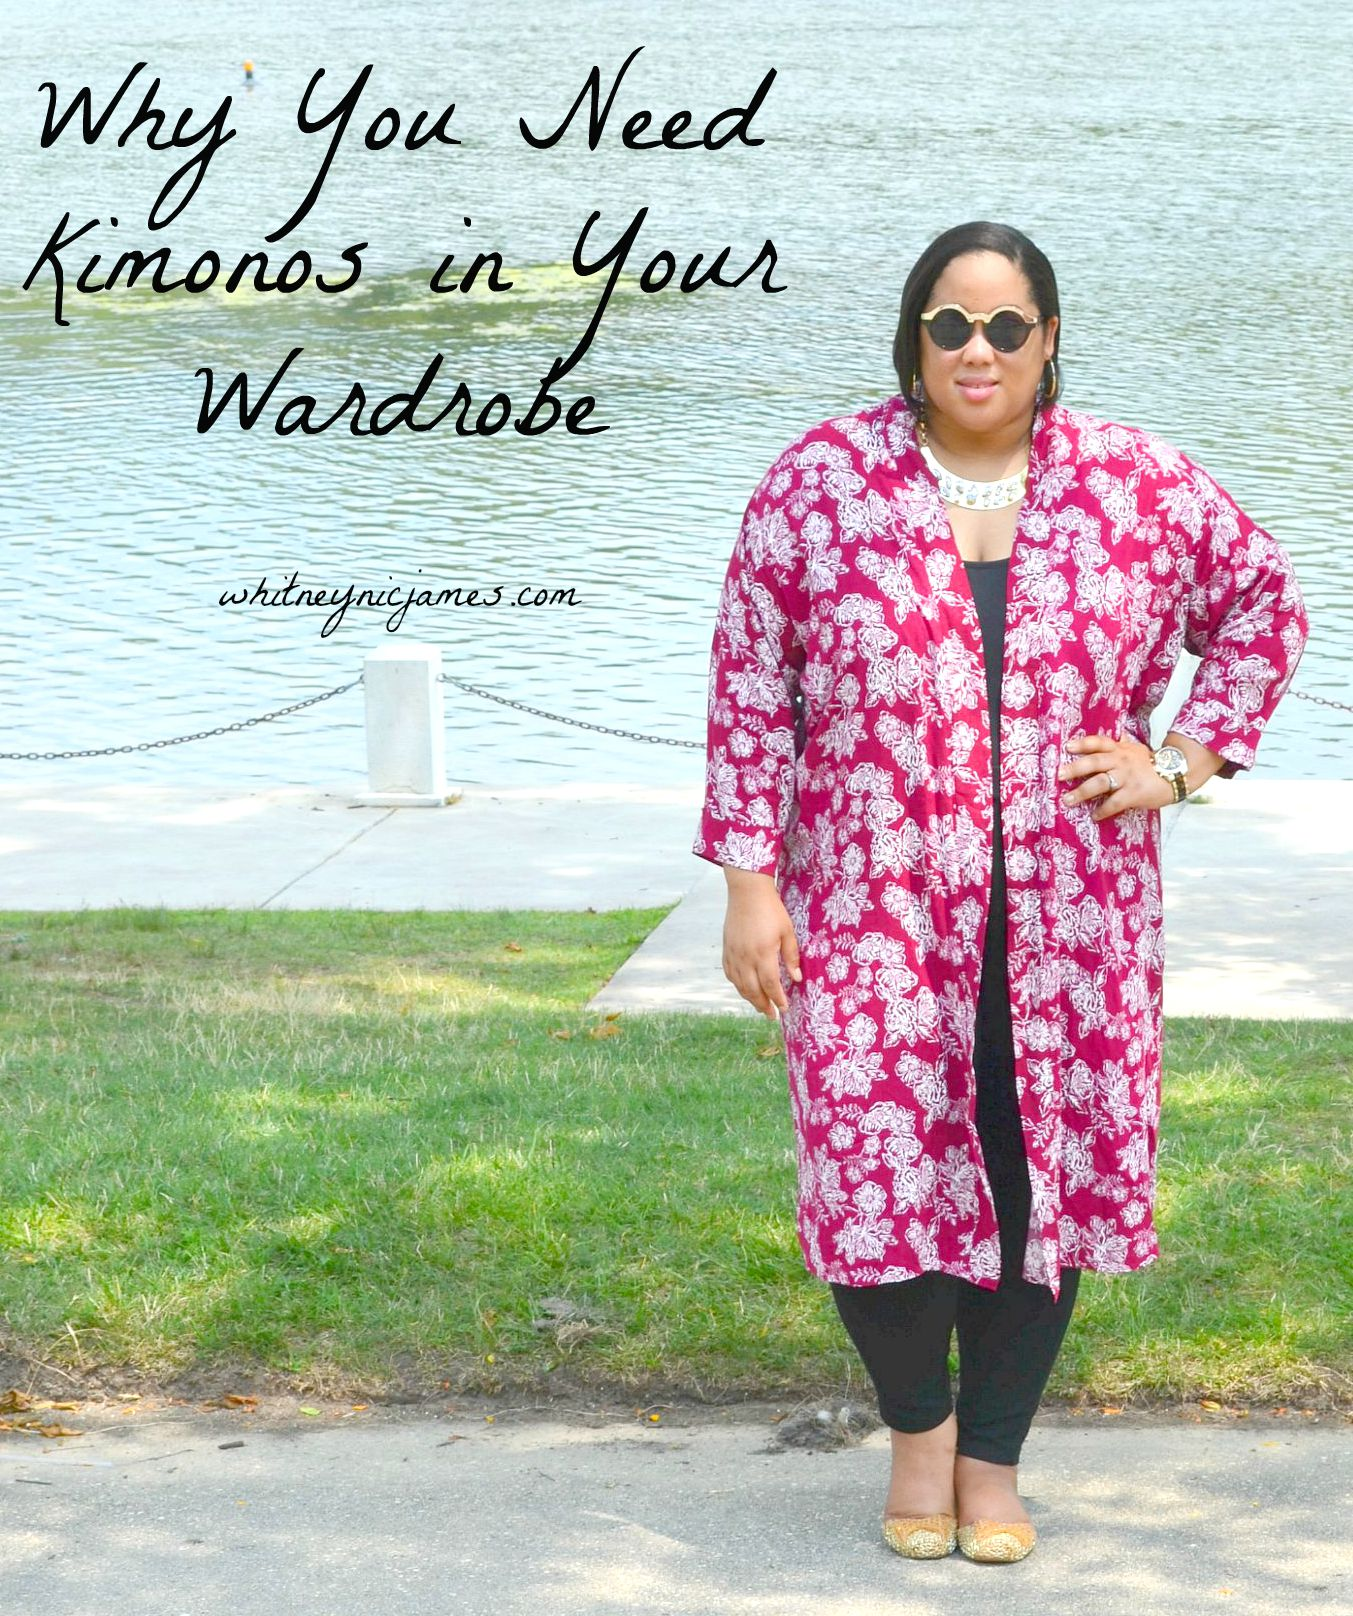 Why You Need Kimonos in Your Wardrobe